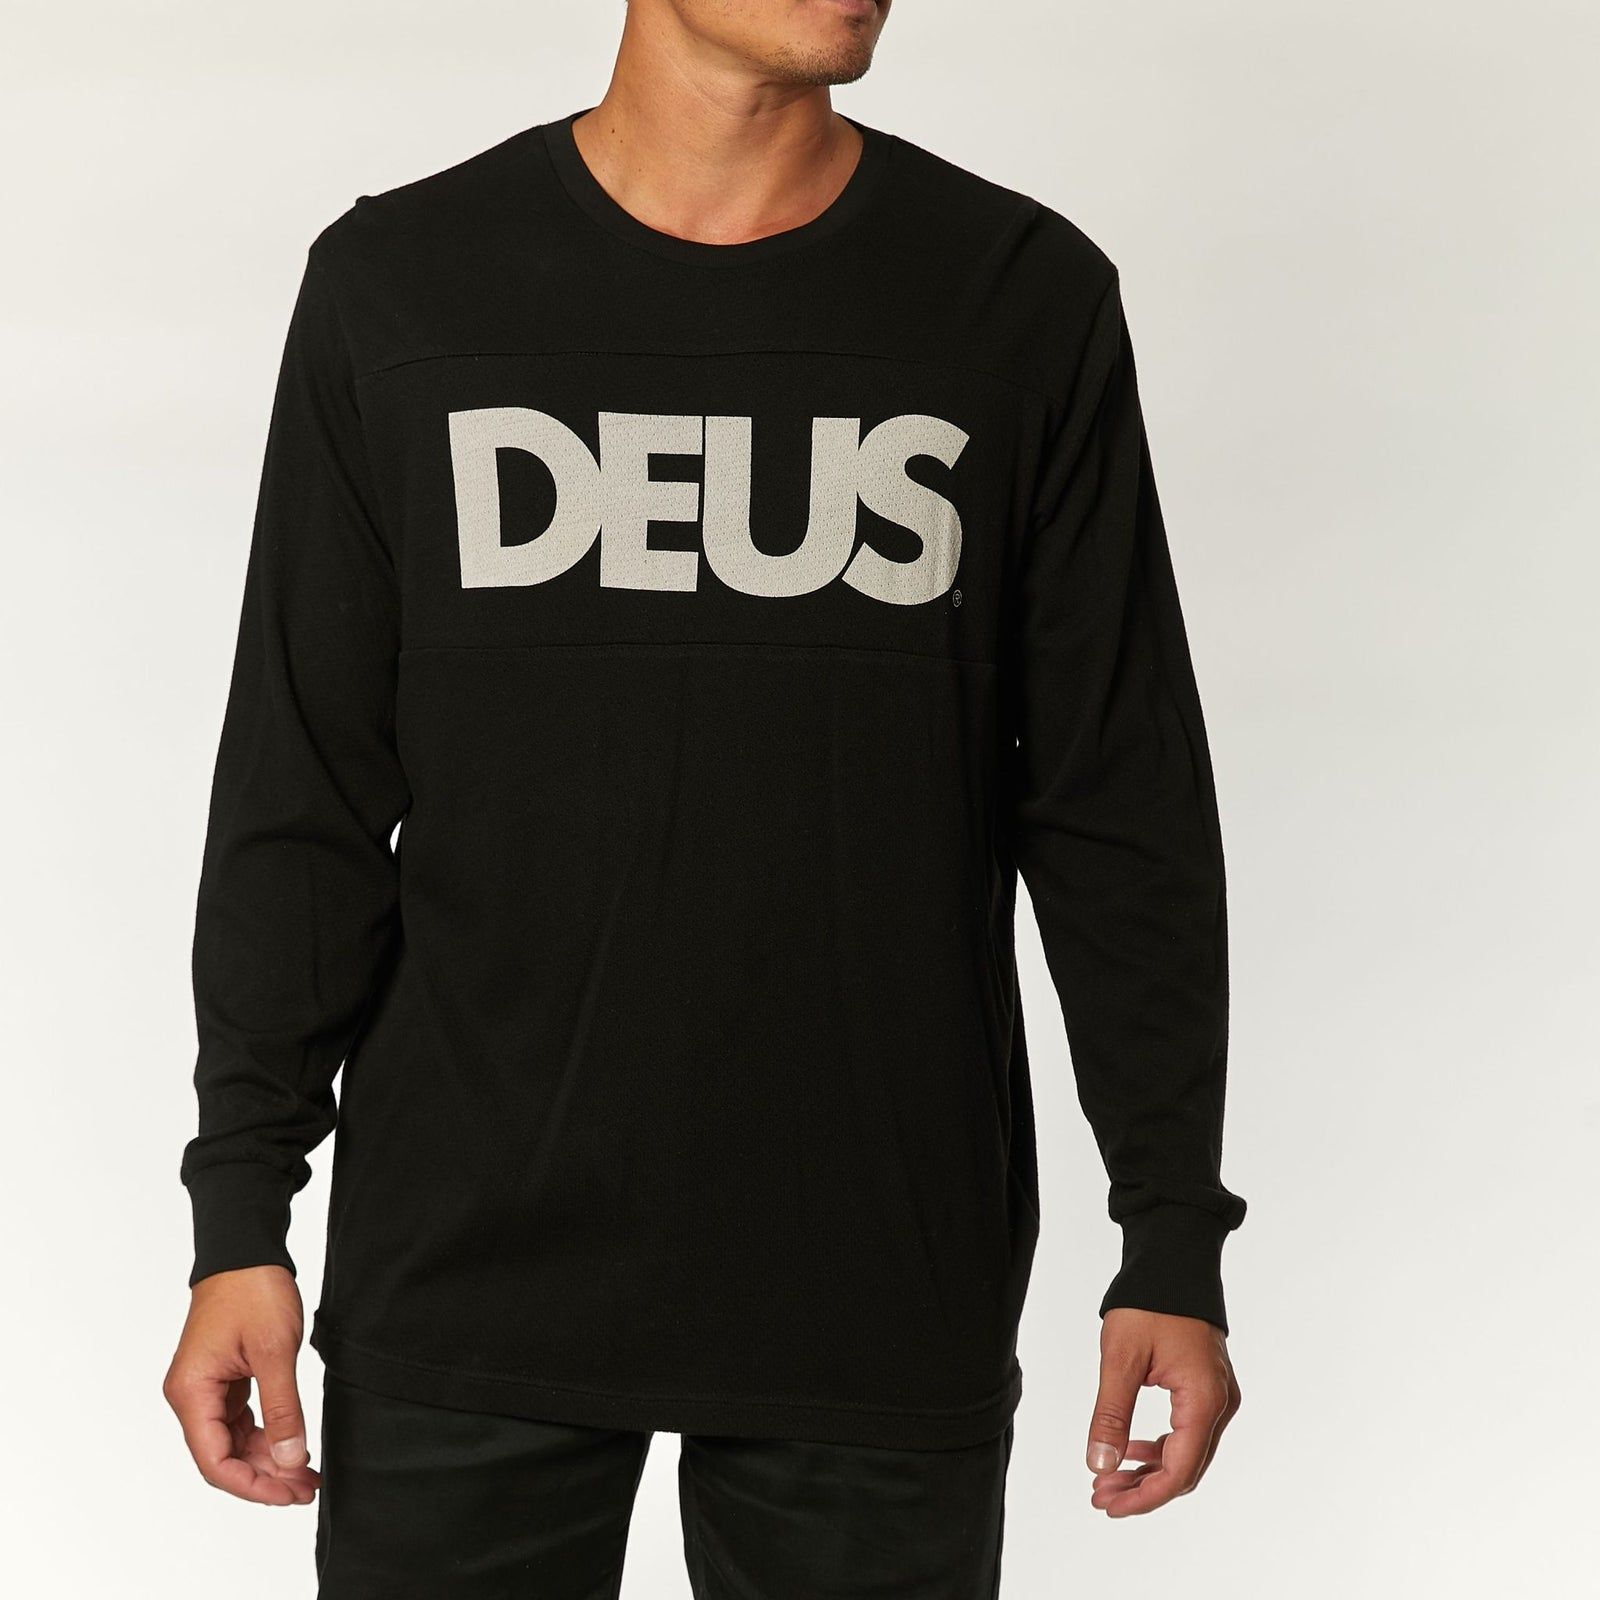 Deus All Caps Moto Jersey Black